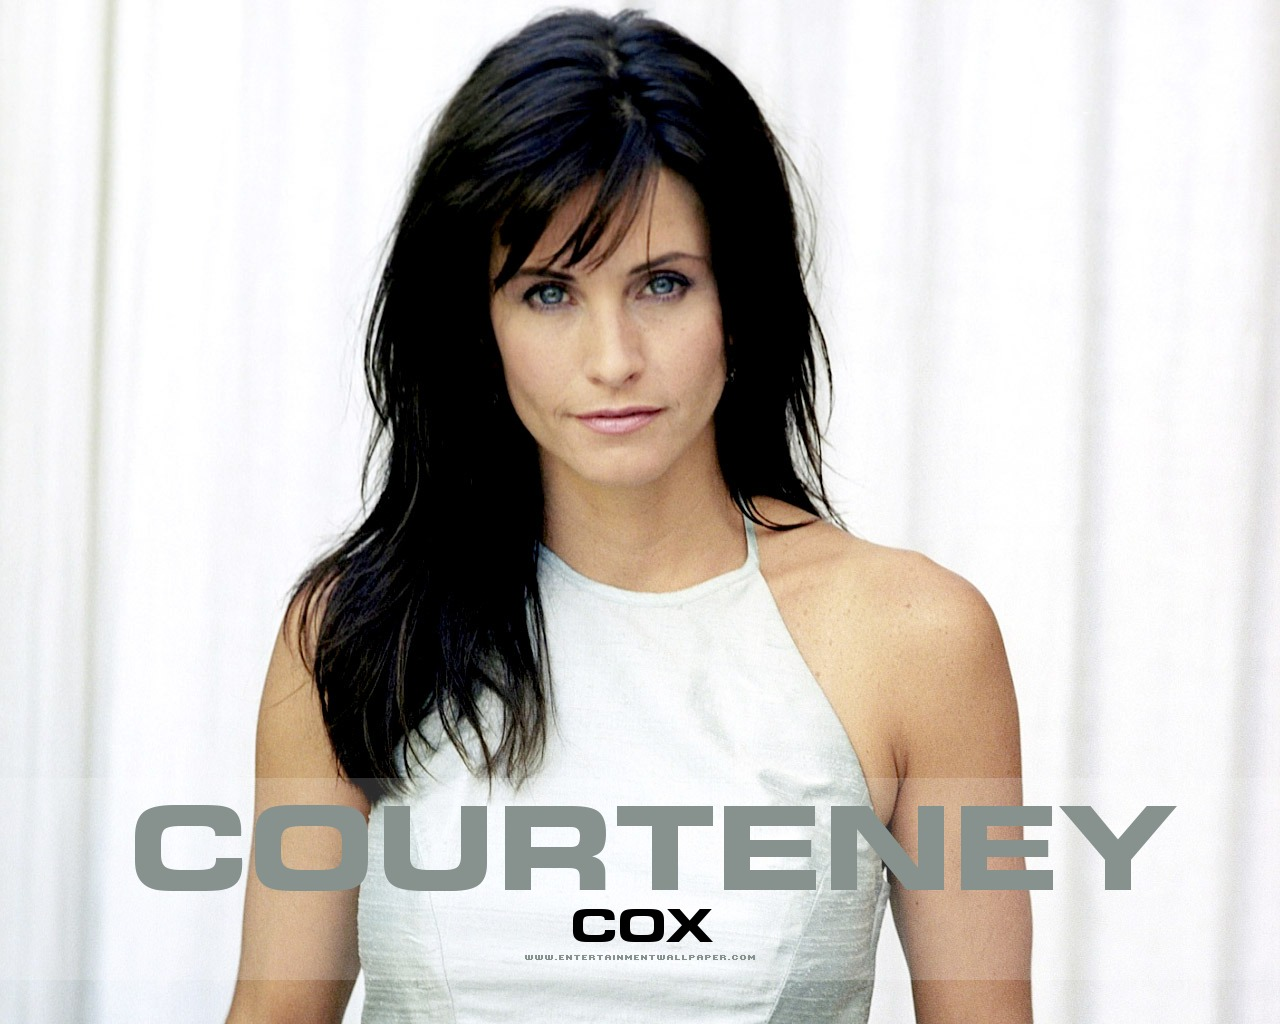 Courteney Cox Arquette - Picture